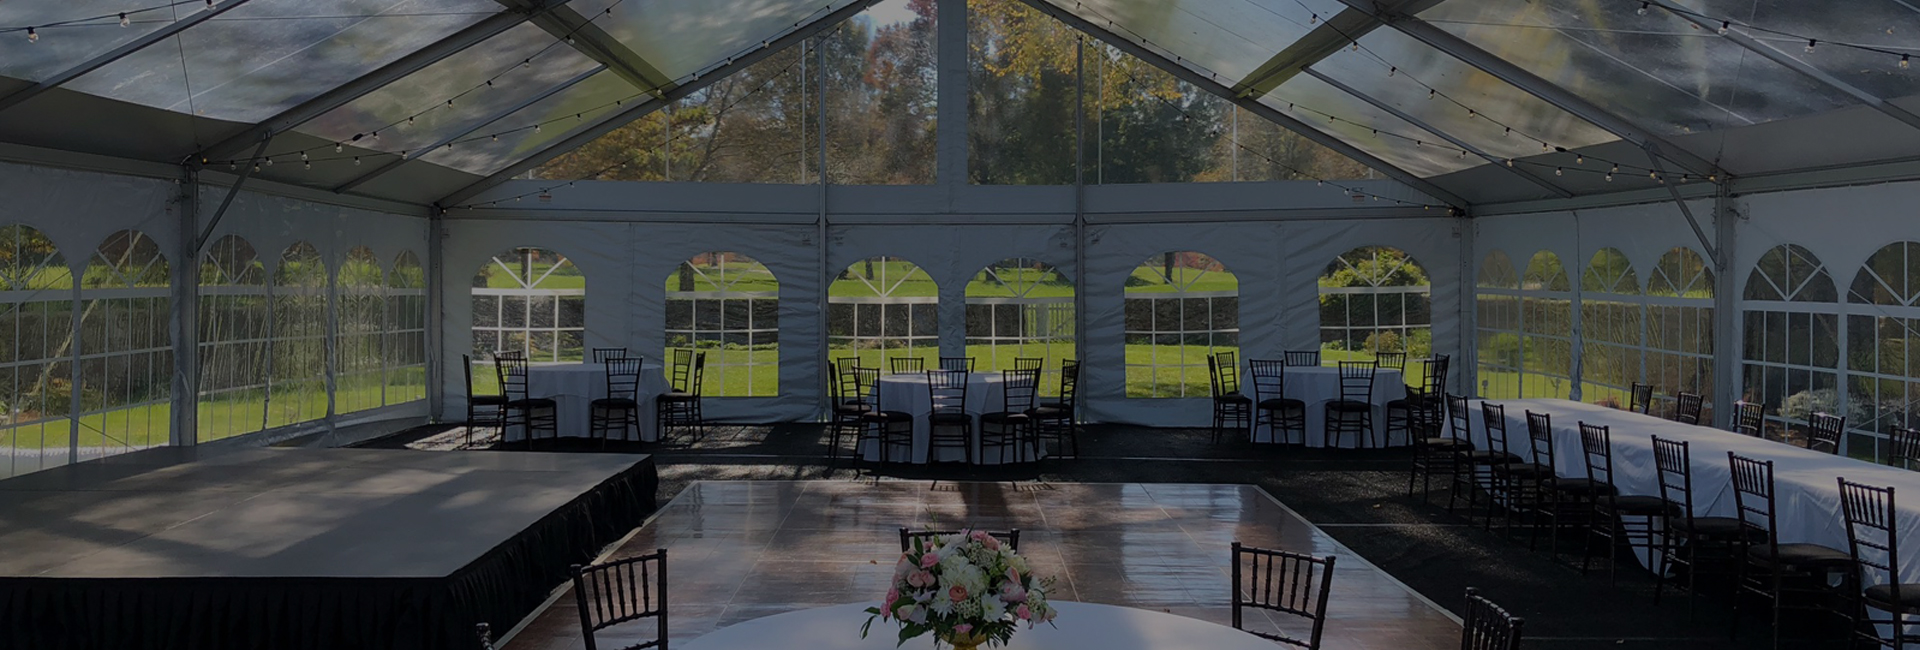 Clear tent with tables & chairs